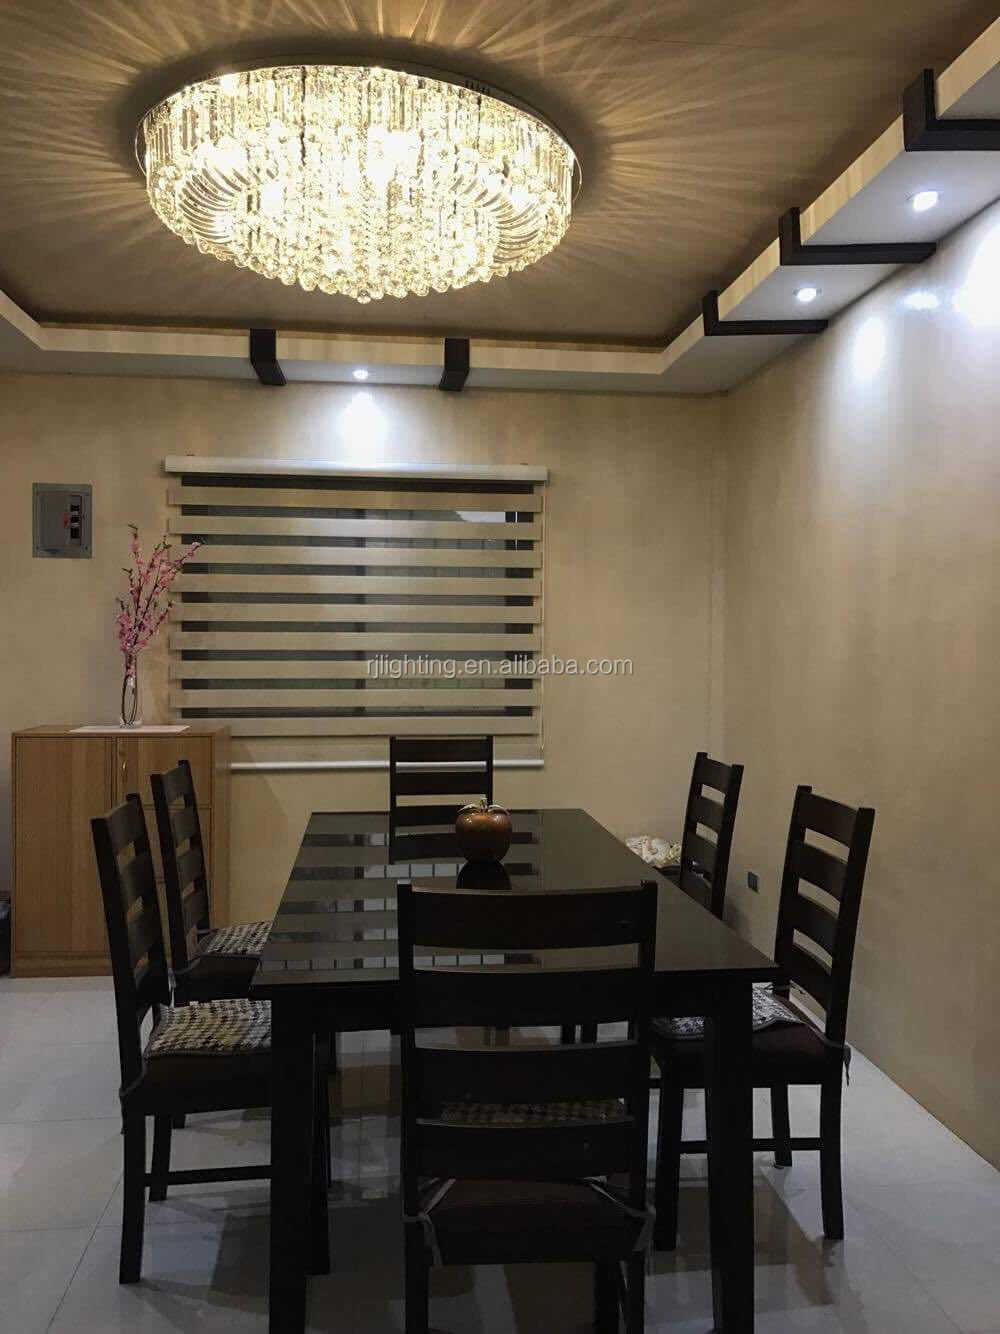 Cheap wholesale custom modern hotel cristal chandelier clear led cheap wholesale custom modern hotel cristal chandelier clear led ceiling light philippines crystal chandelier arubaitofo Image collections